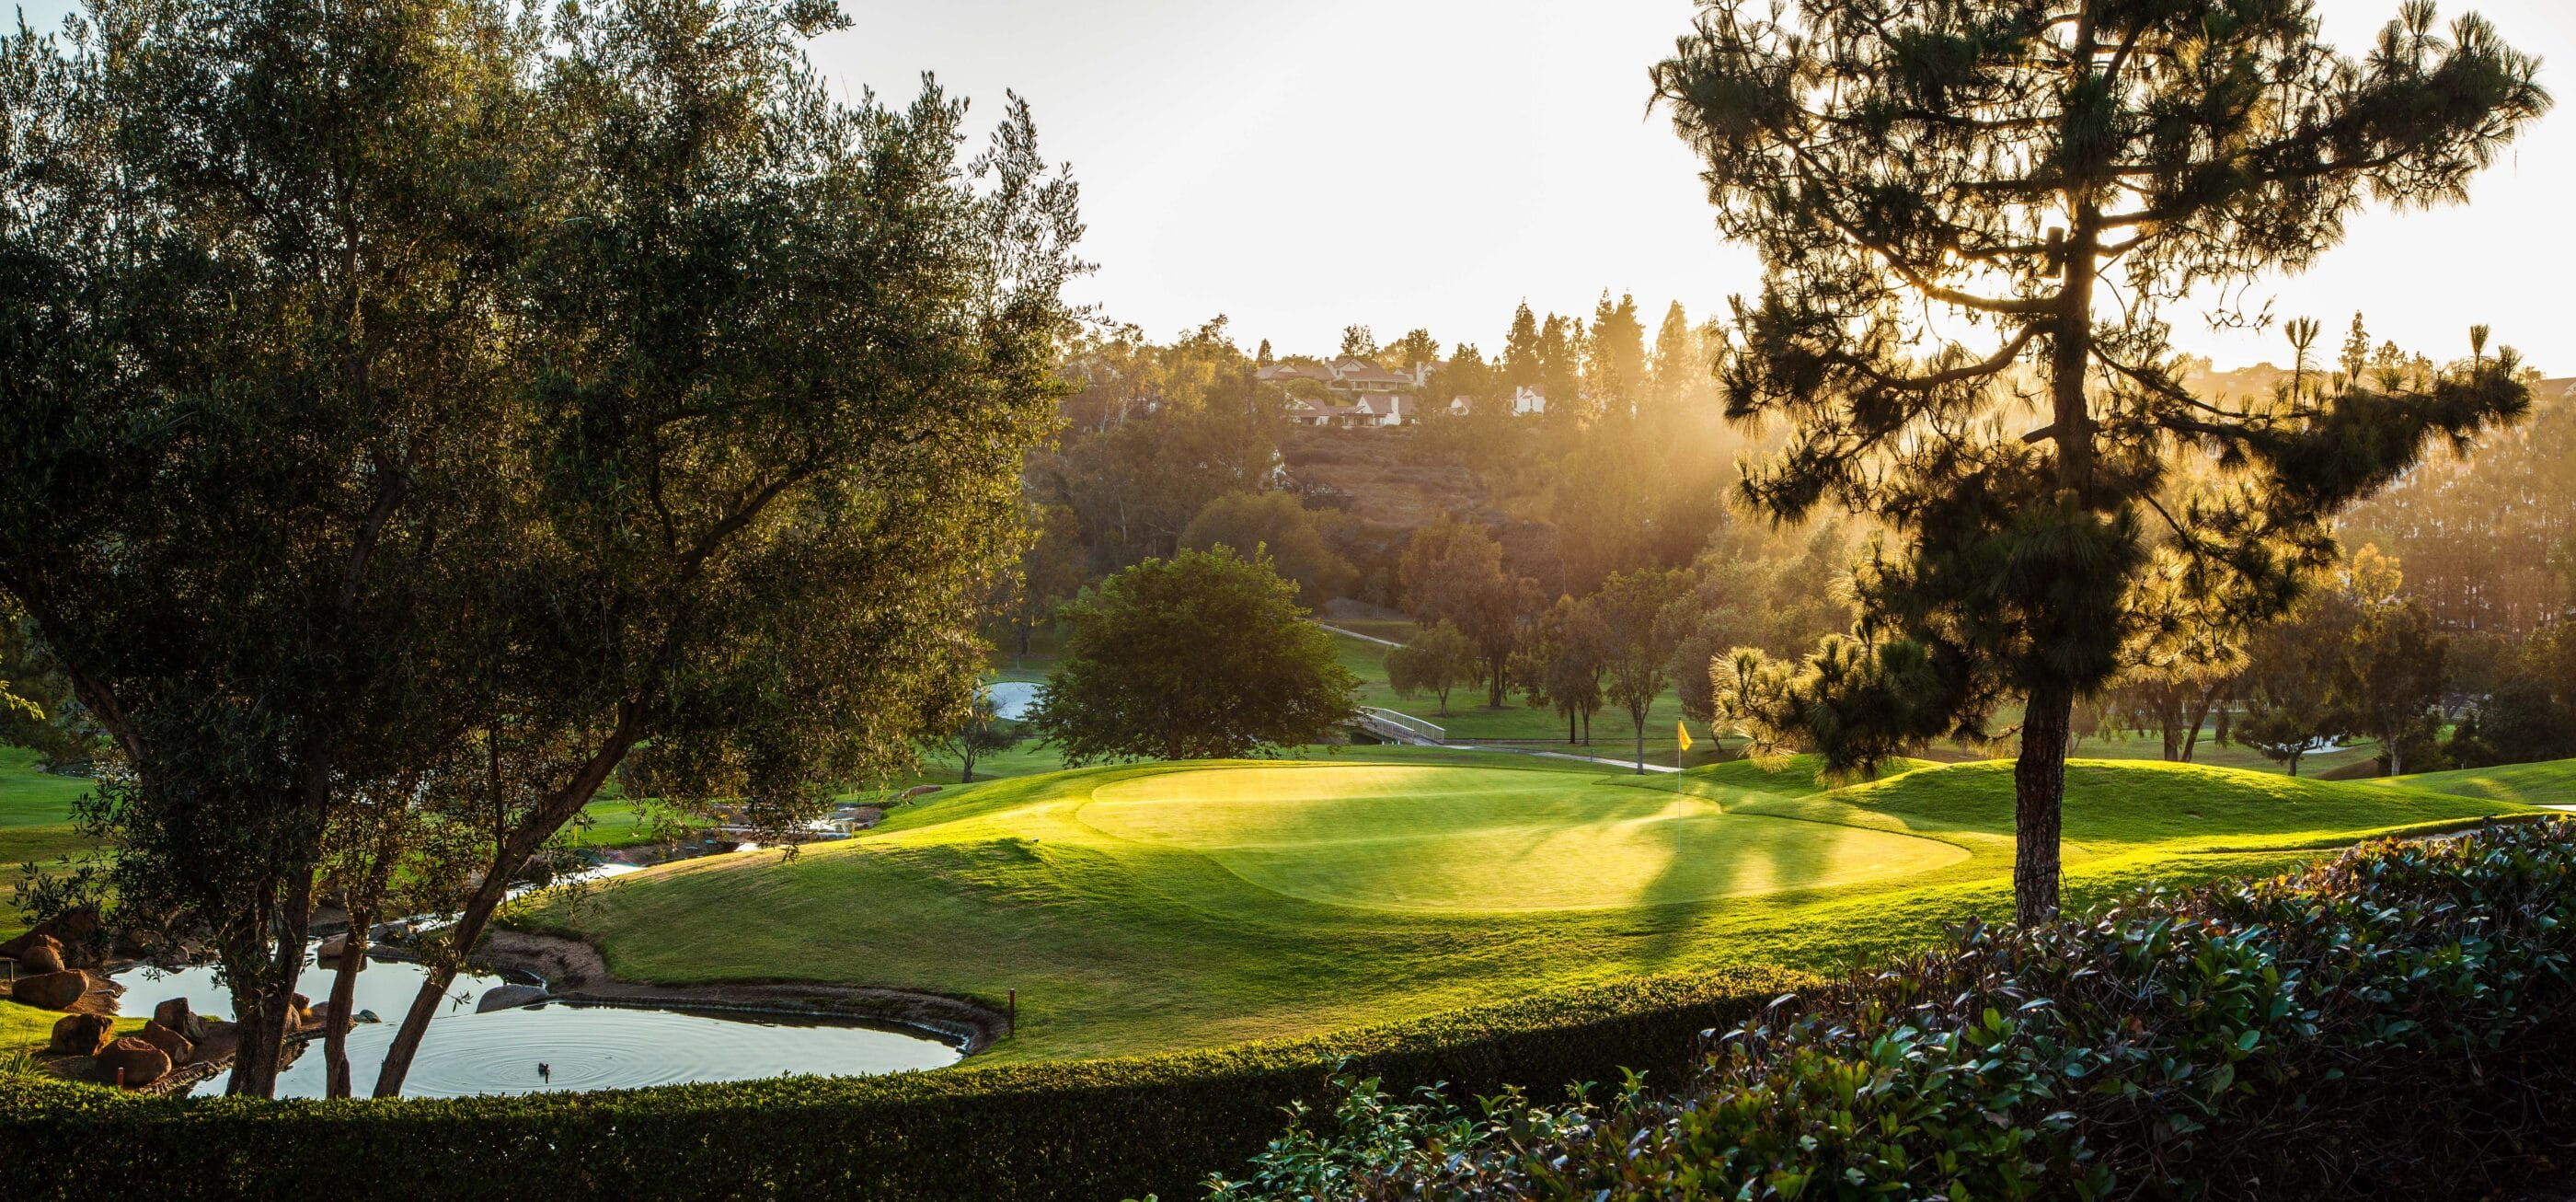 The golf course at golden hour